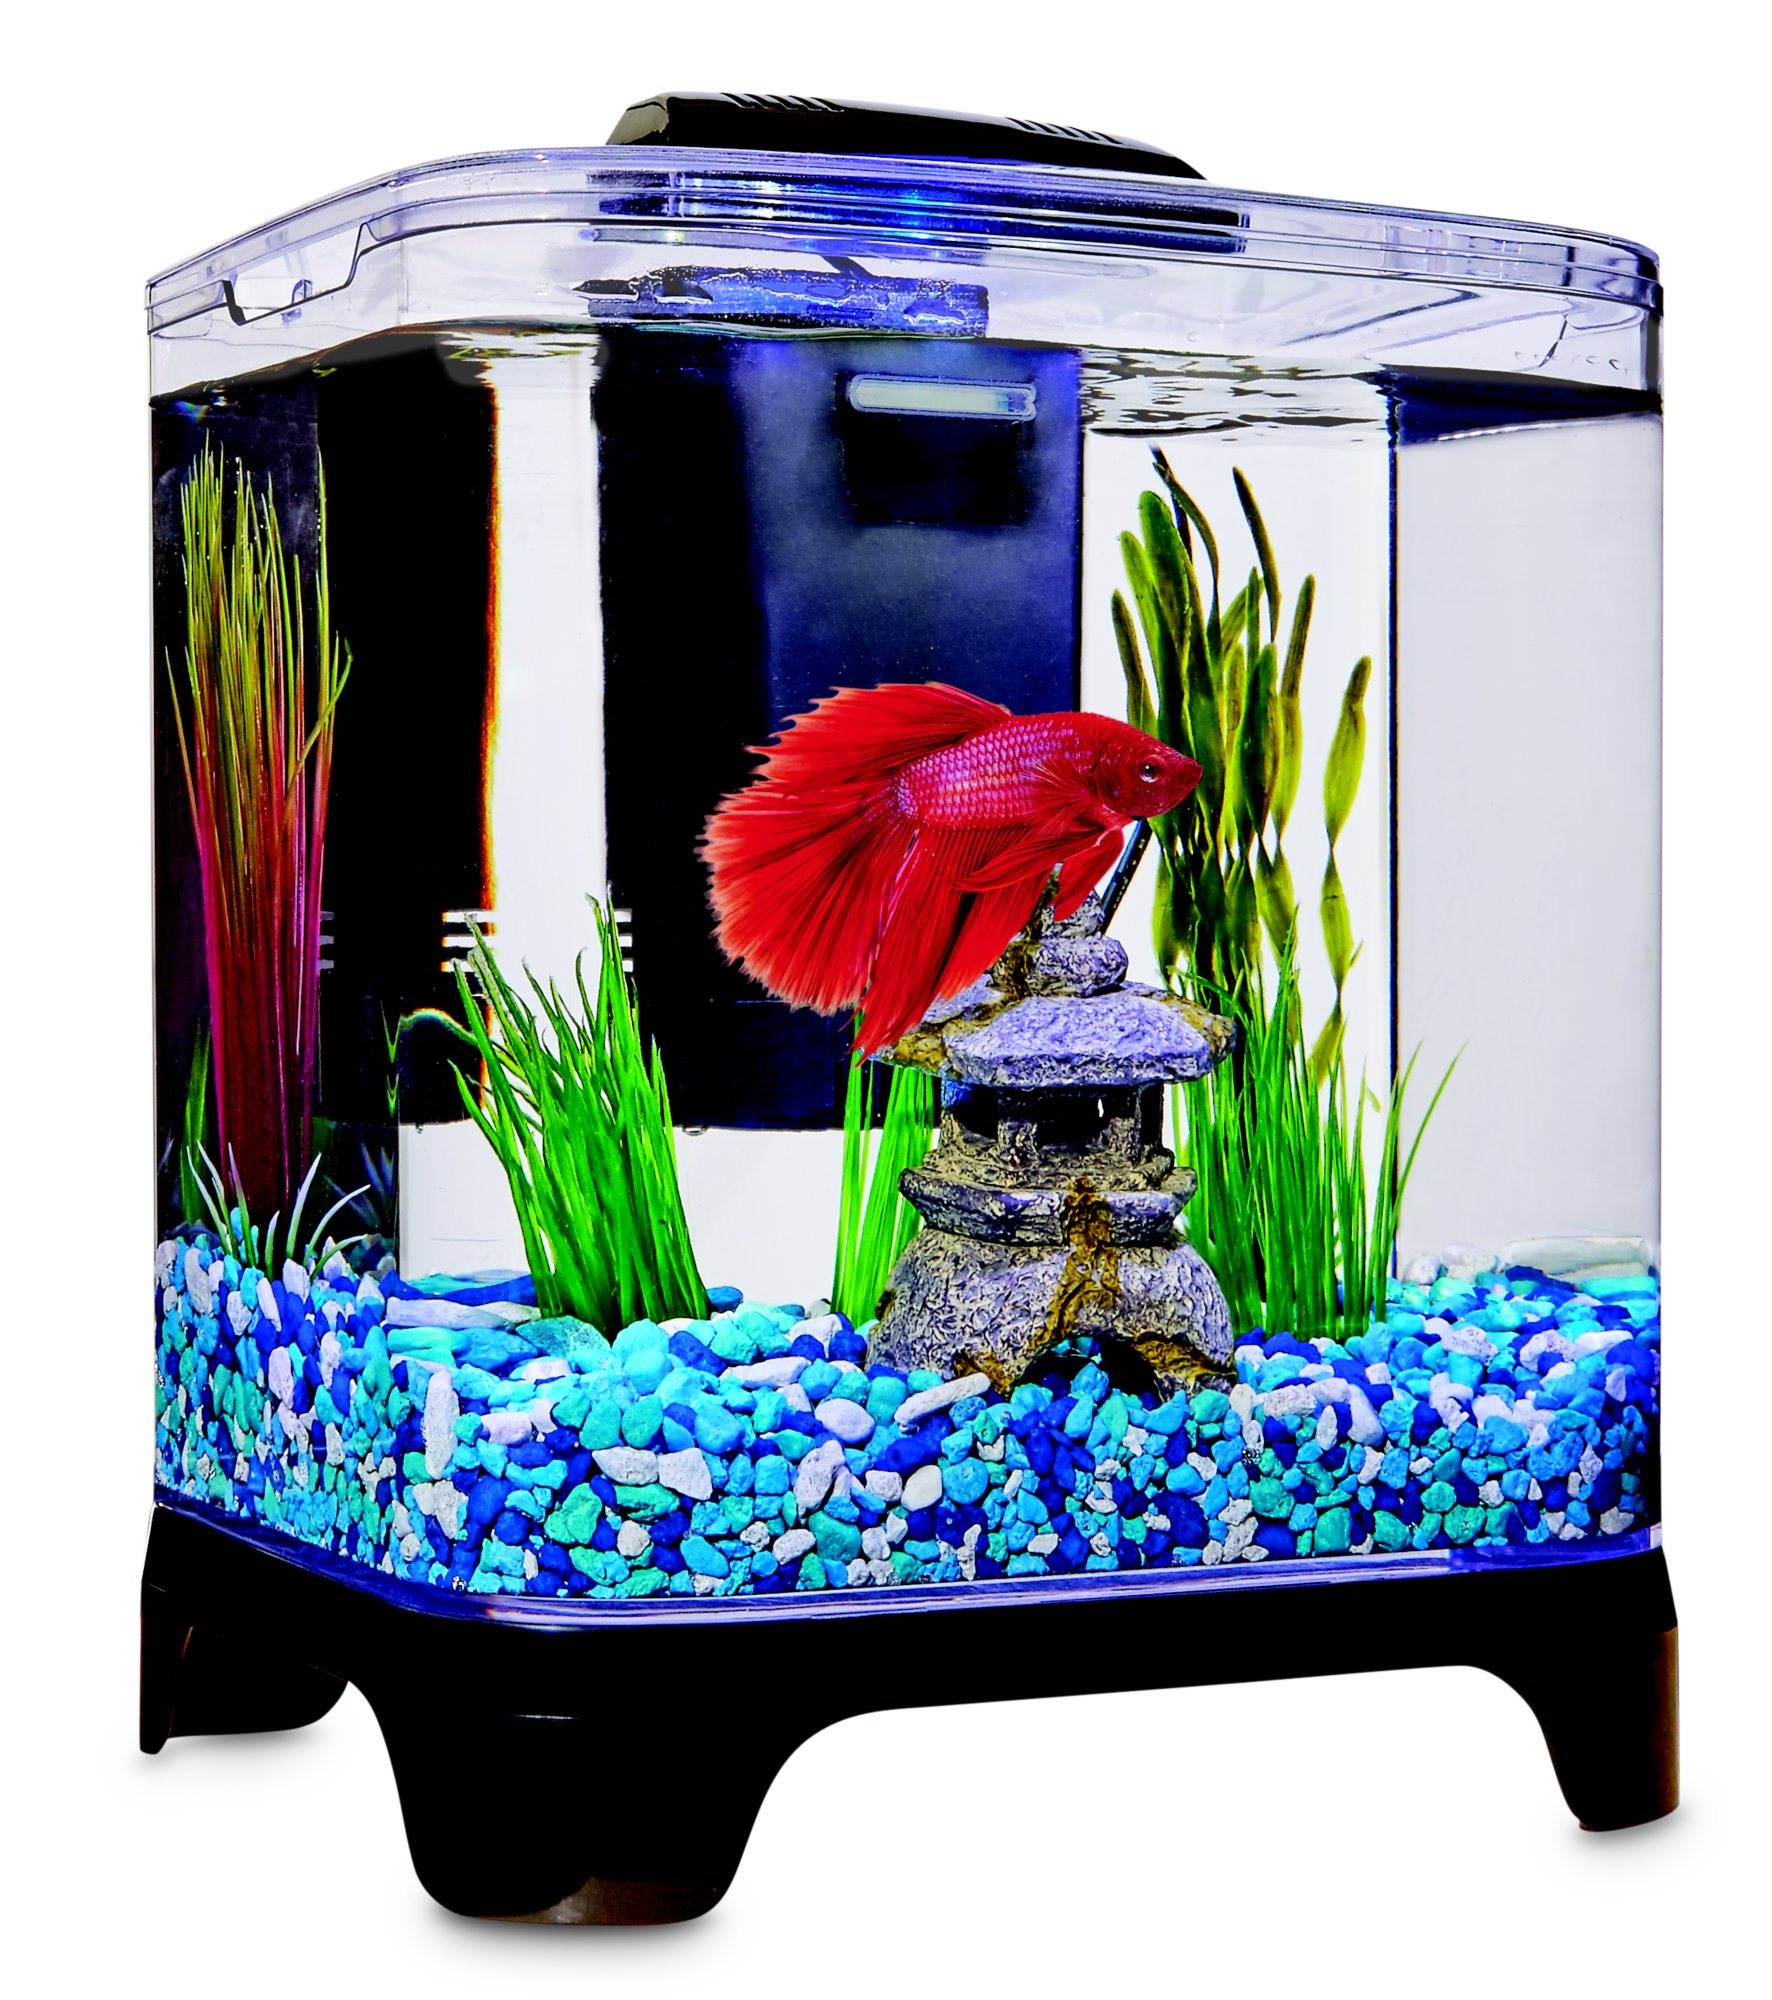 Imagitarium Betta Desktop Kit 1 4 Gal Petco Diy Fish Tank Betta Betta Fish Tank